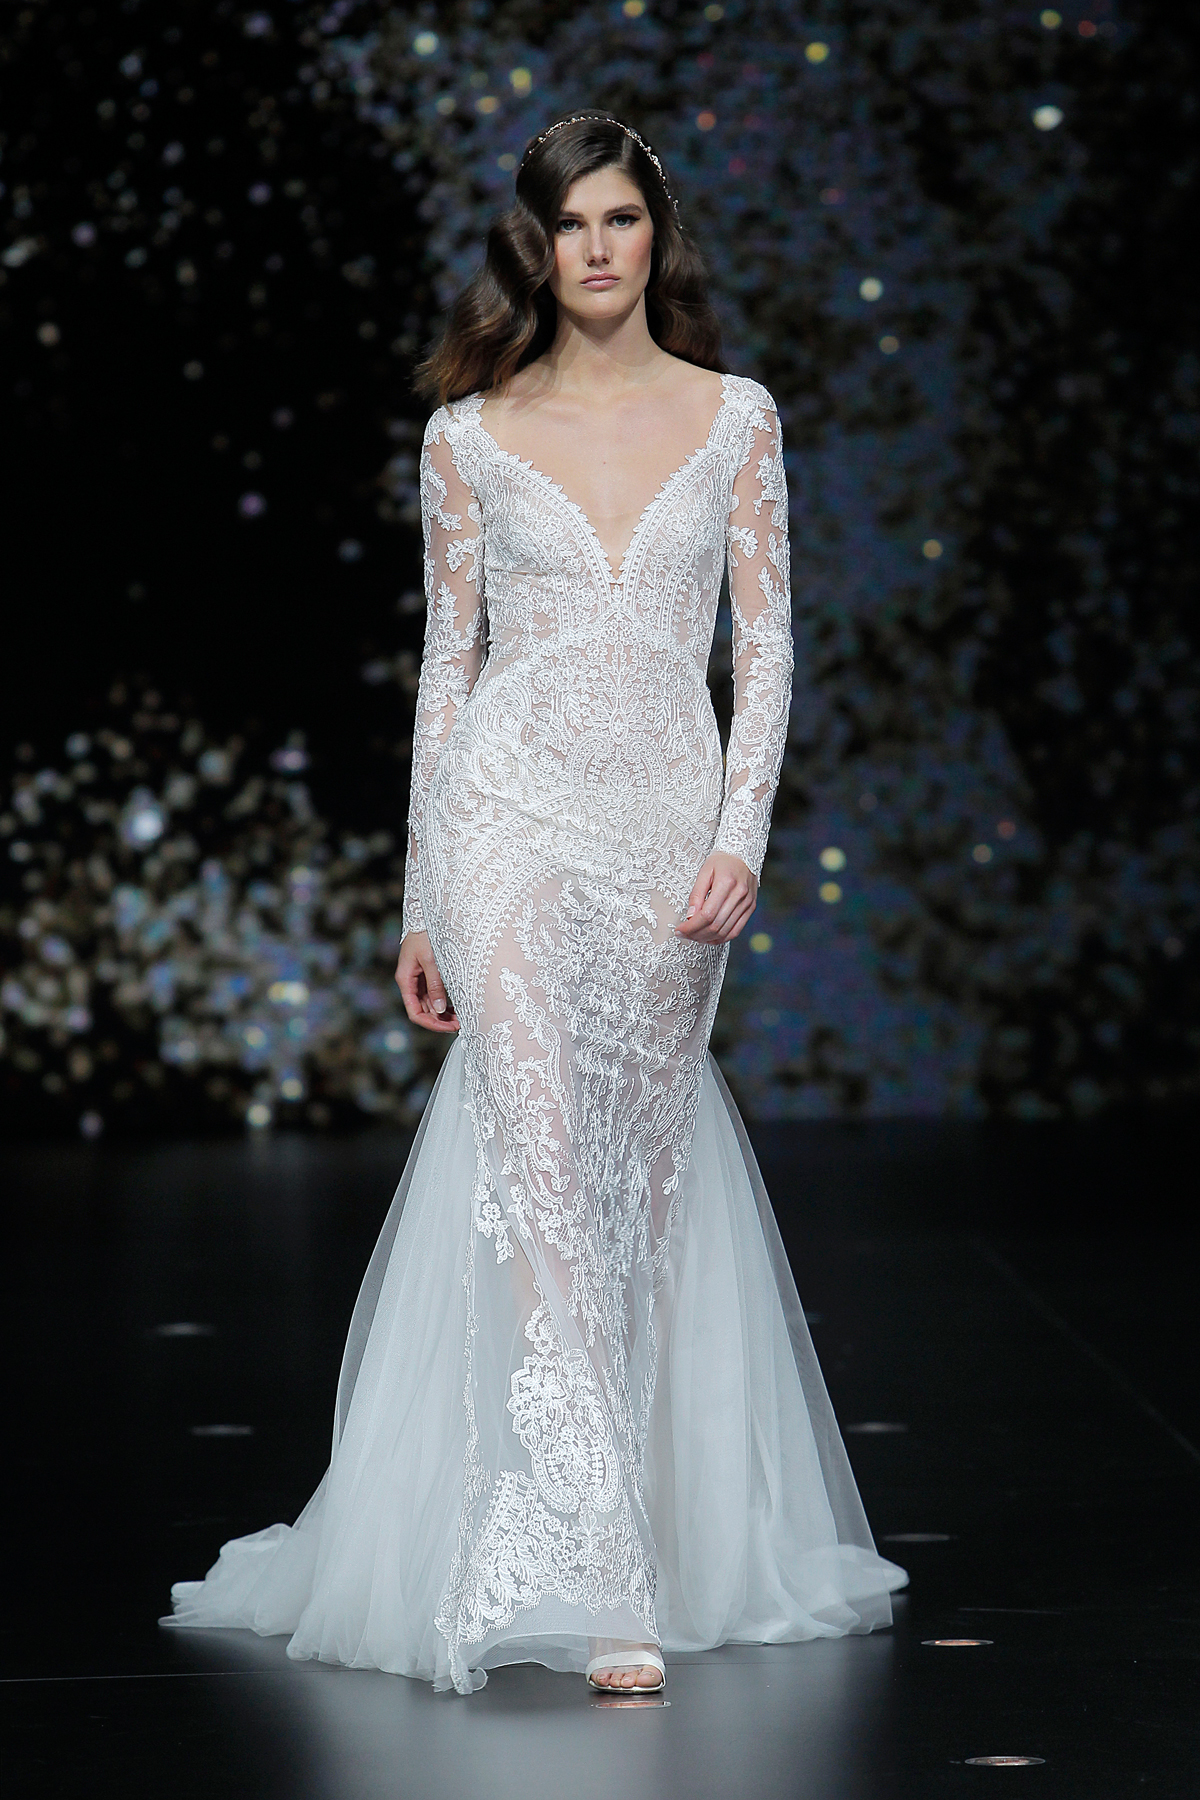 pronovias sheer long sleeve lace wedding dress with tulle train spring 2020